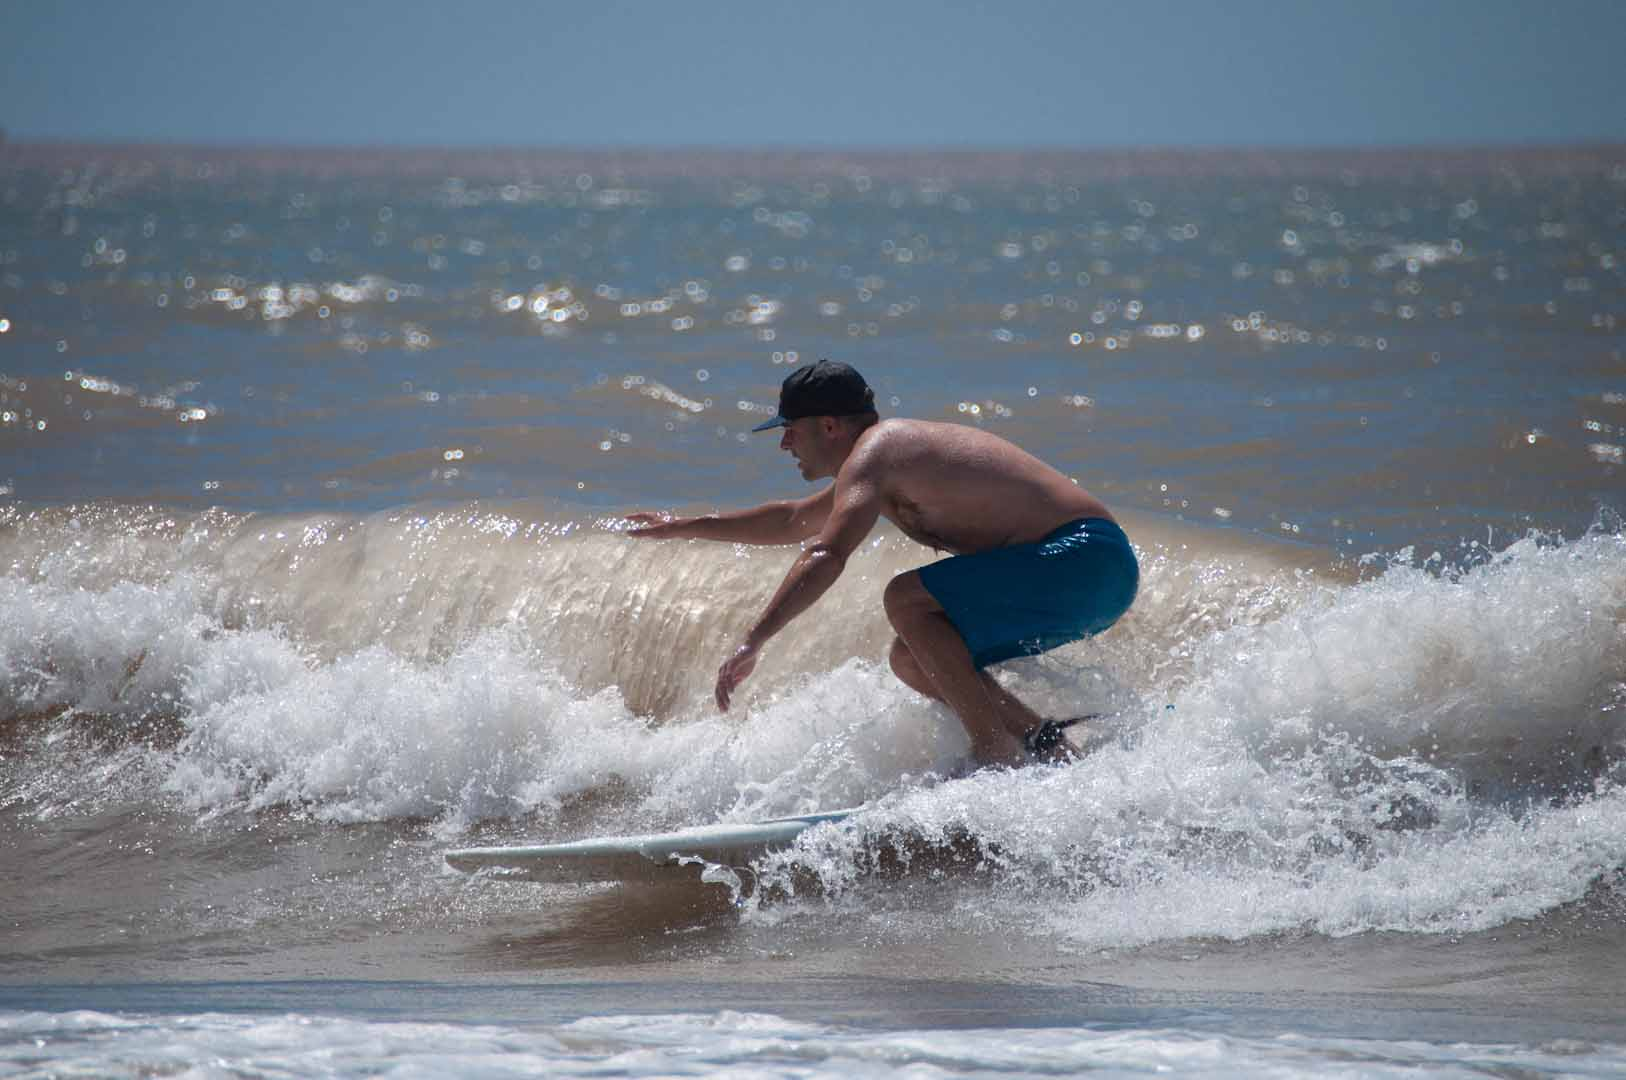 SurfsideLateJune_20150627_050